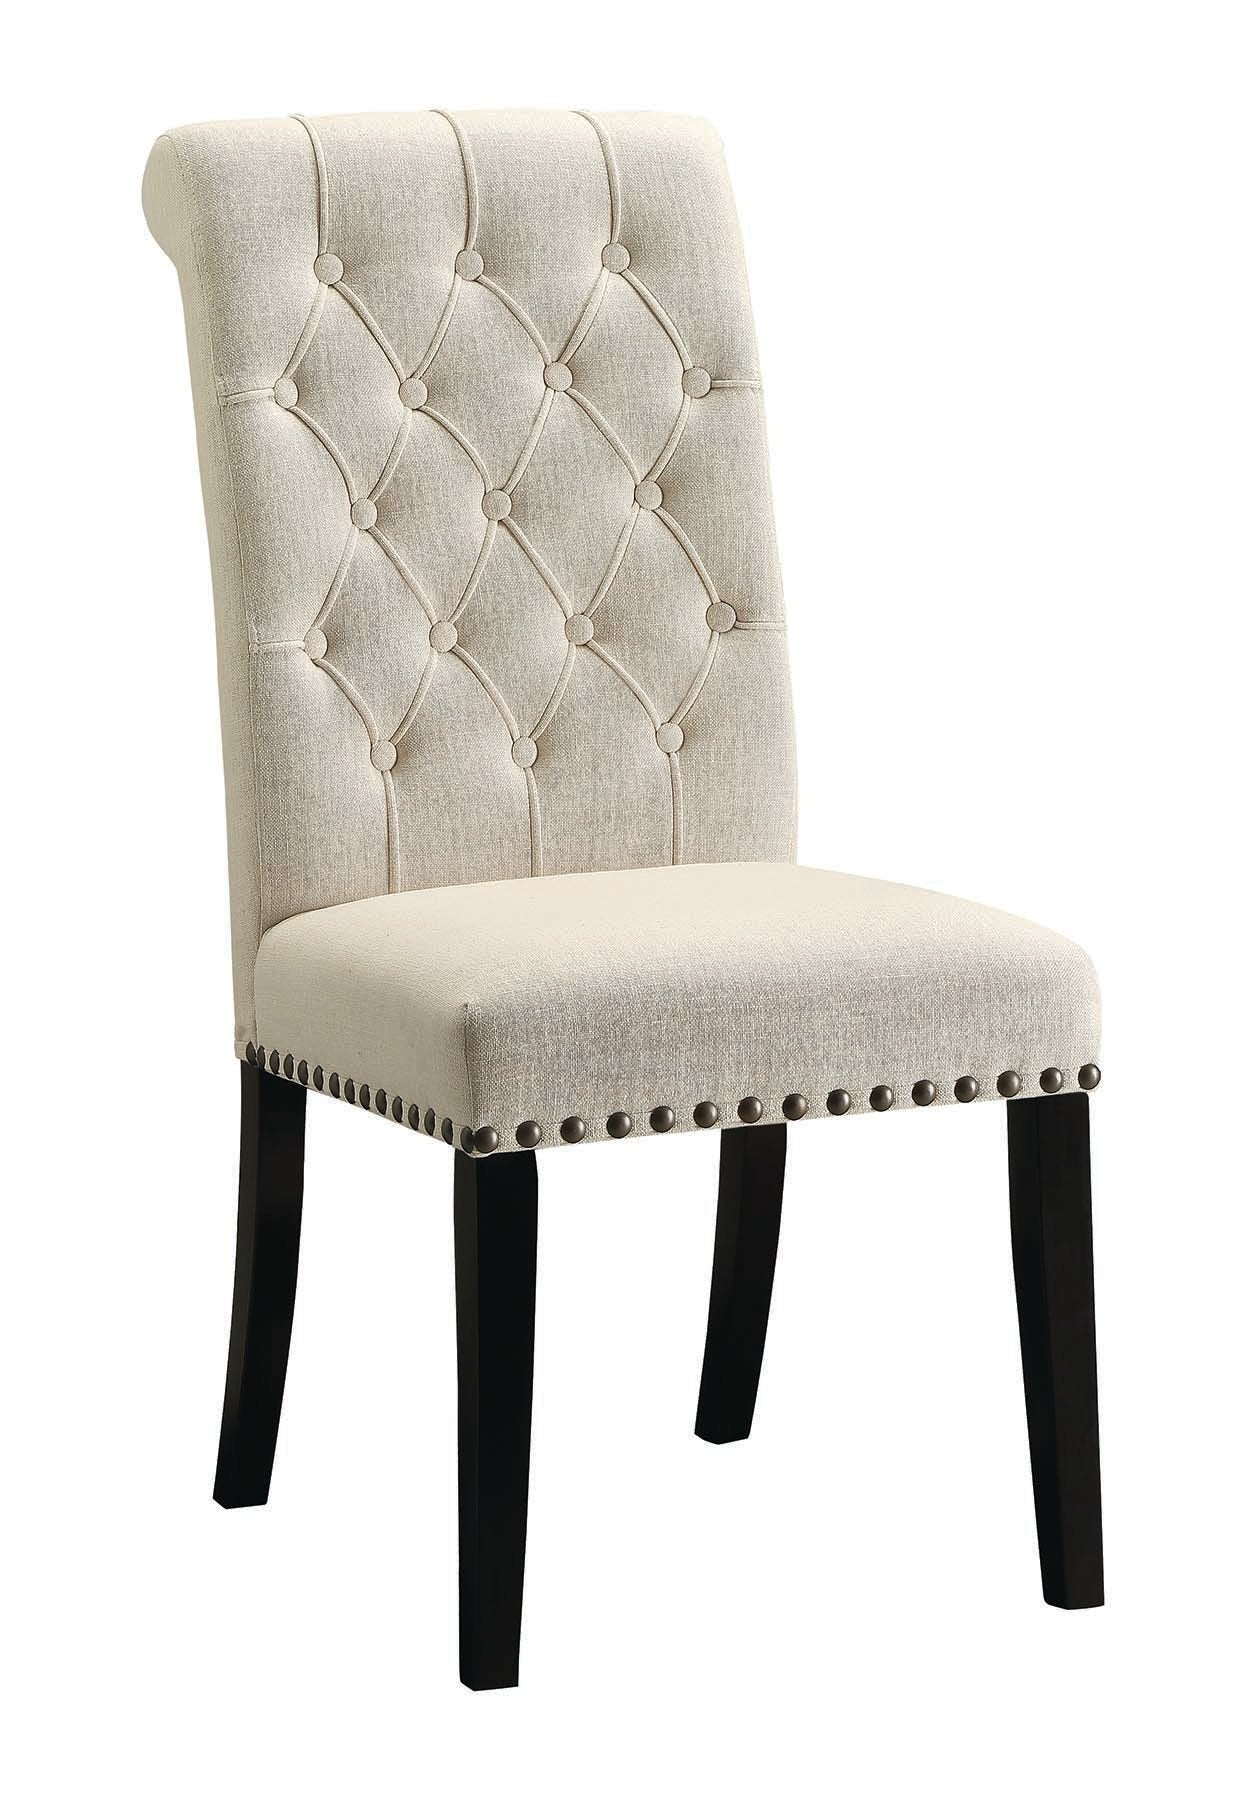 Homy Living Parkins Cream Fabric And Wood Finish 2 Piece Dining Chair